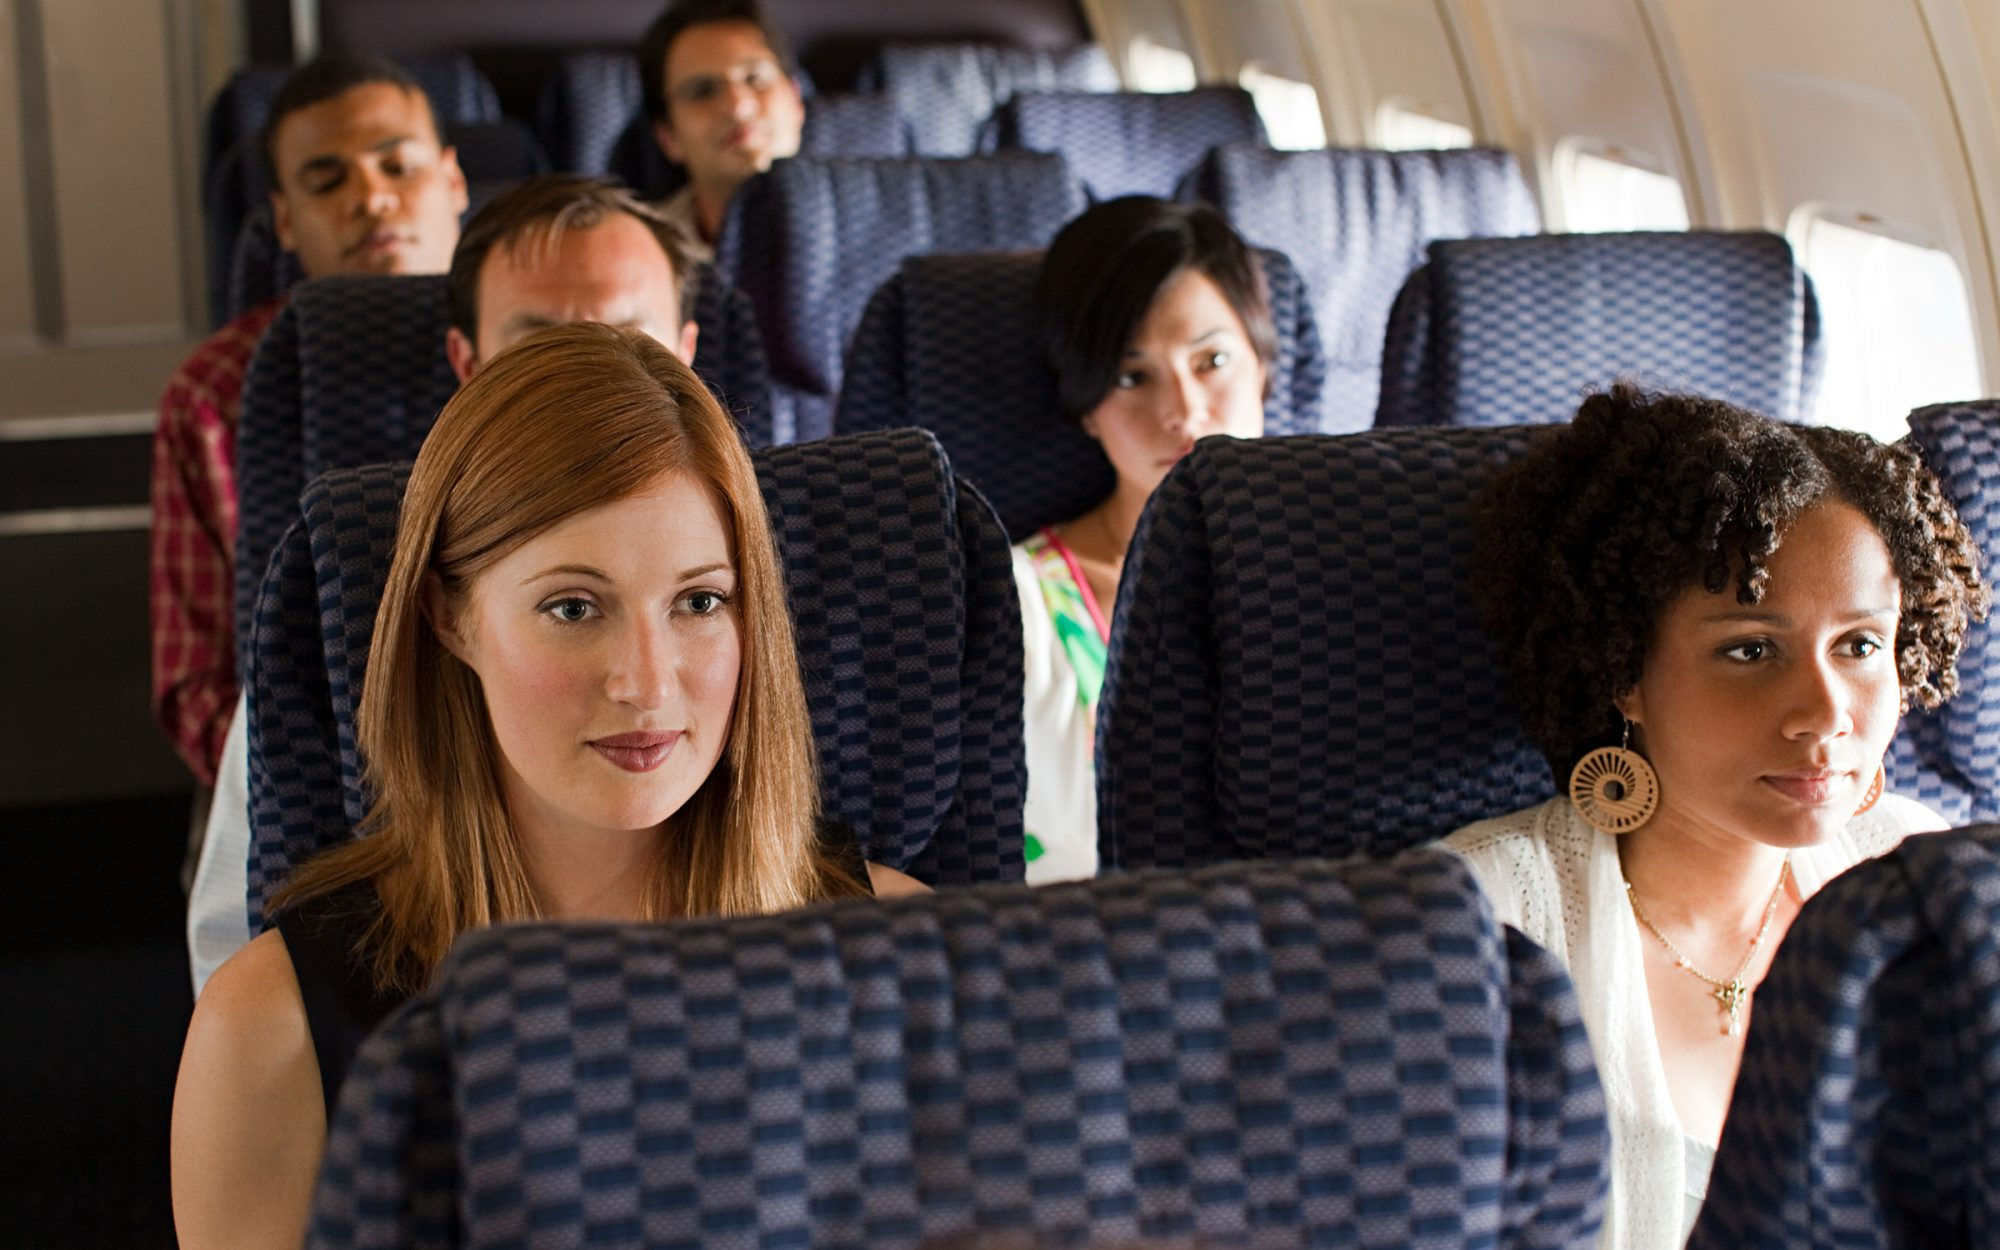 Airplane passengers seated